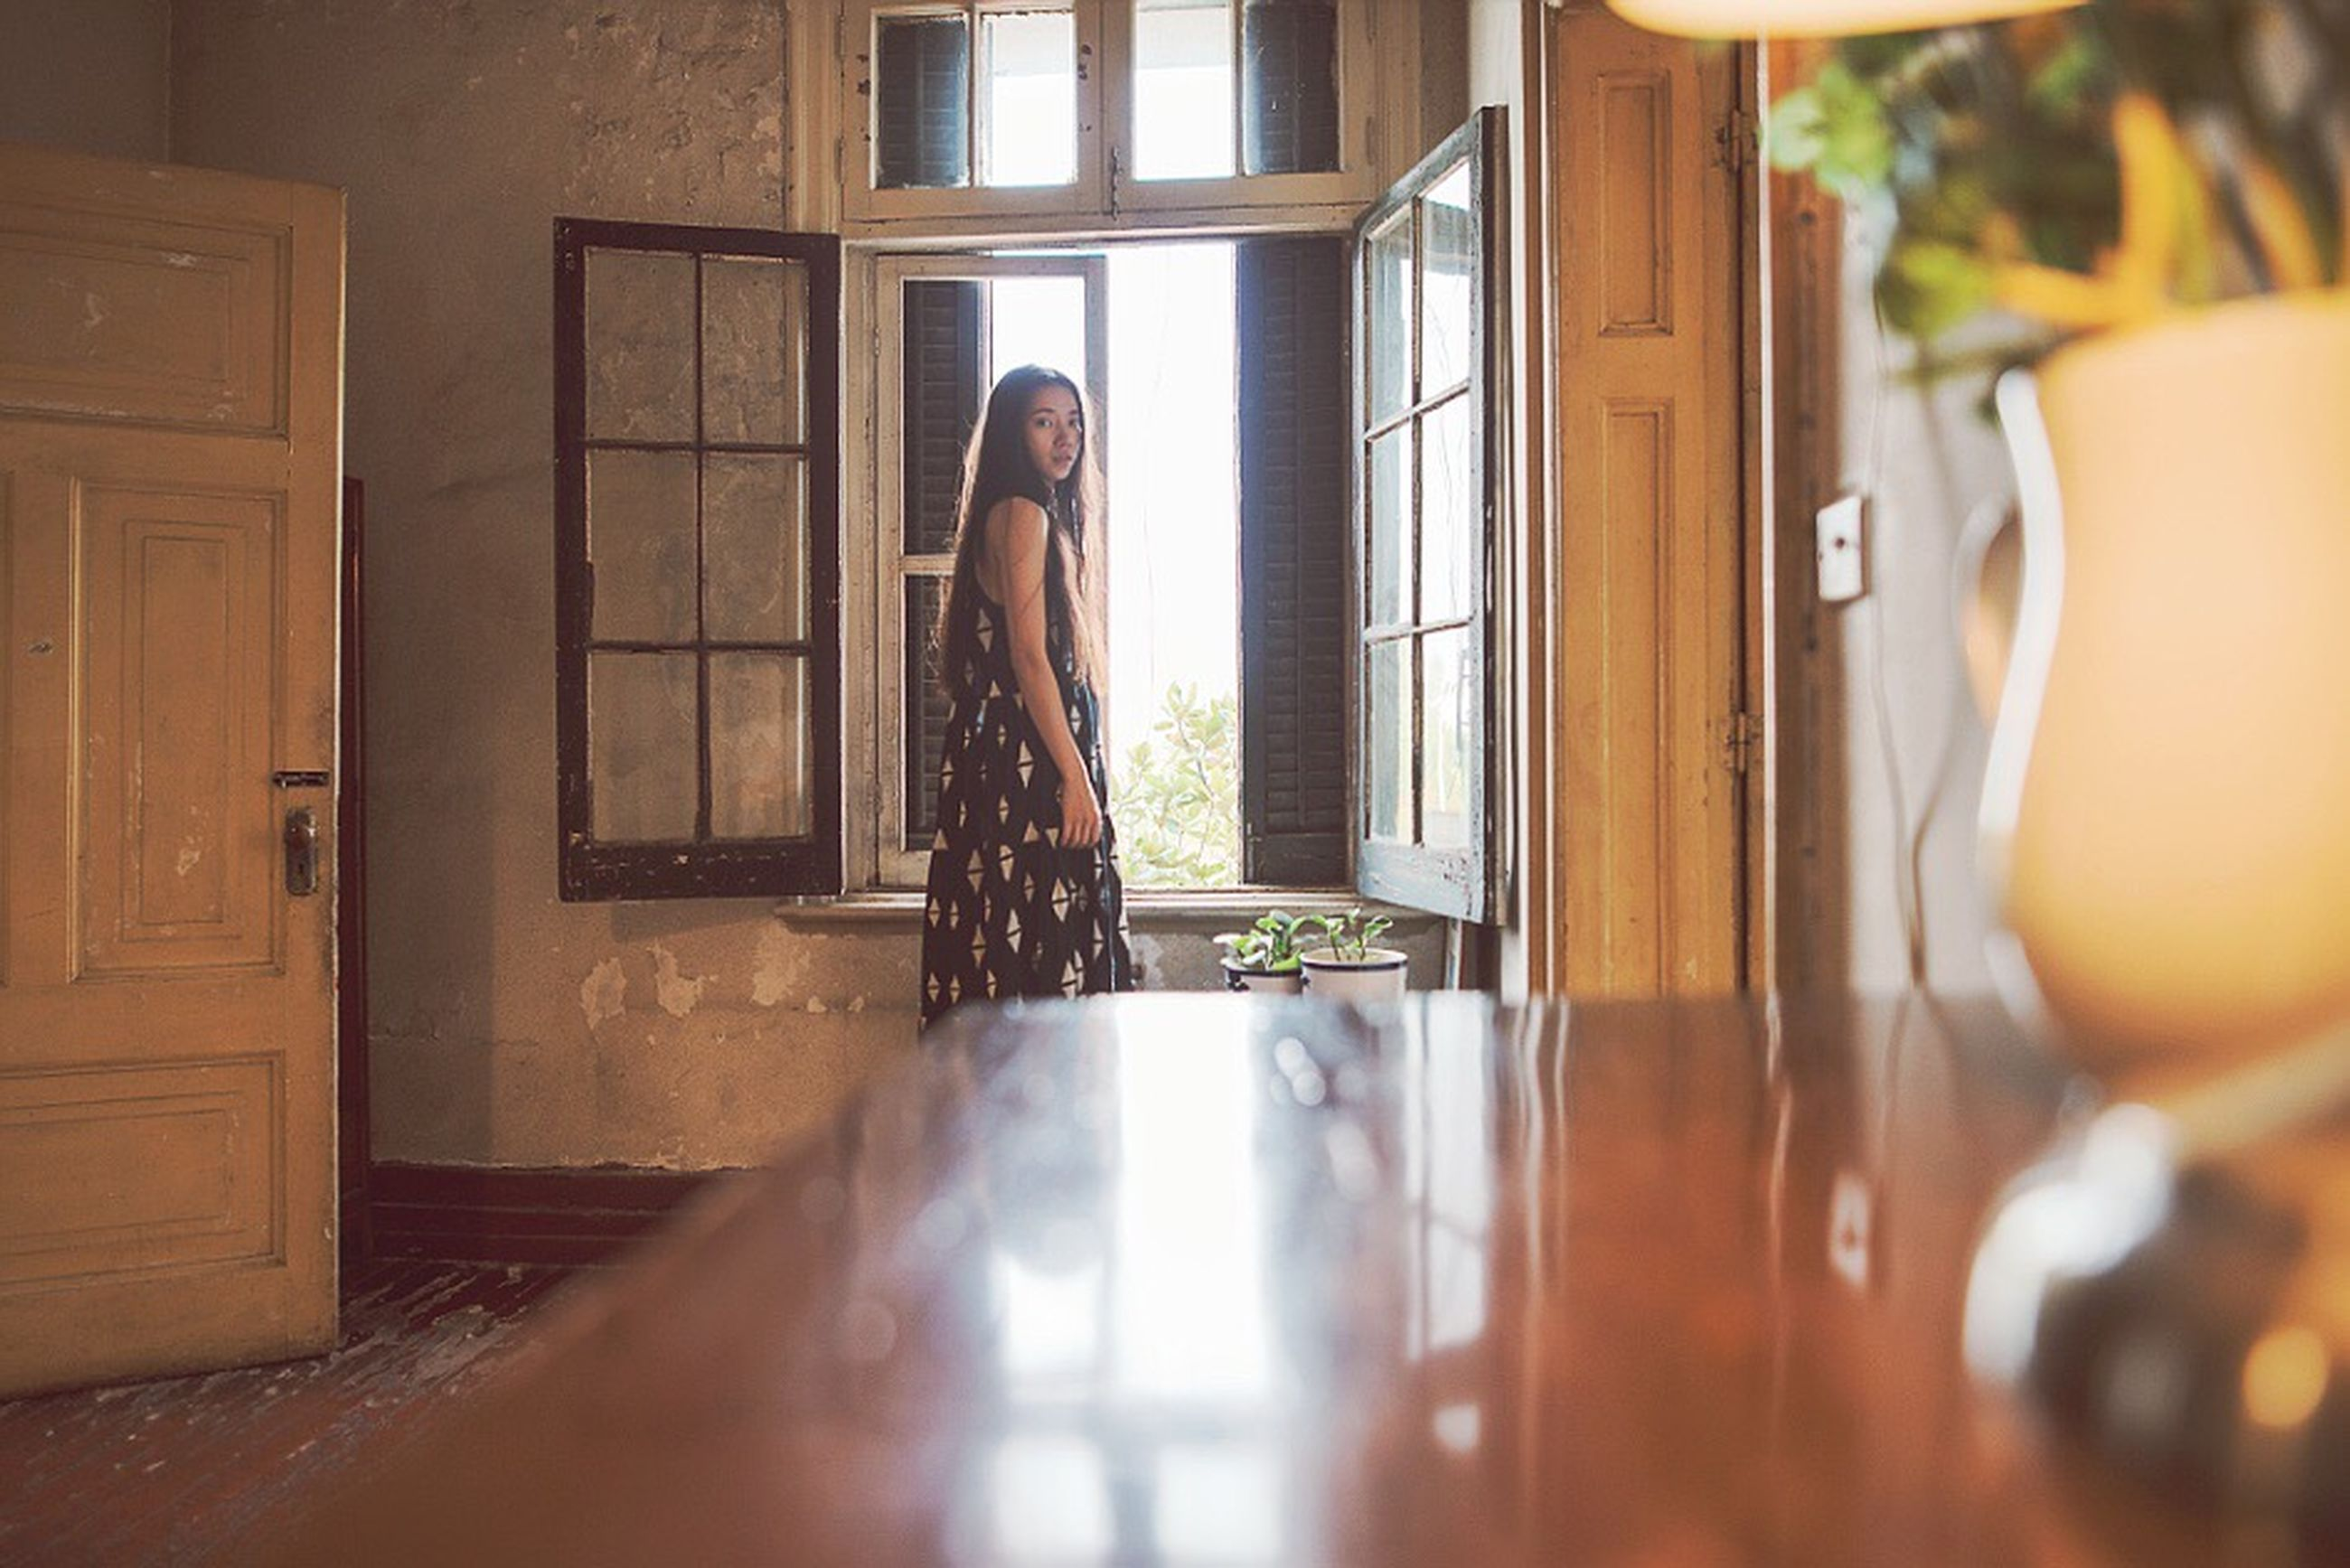 standing, window, indoors, door, open, house, rear view, full length, domestic life, day, person, casual clothing, contemplation, window frame